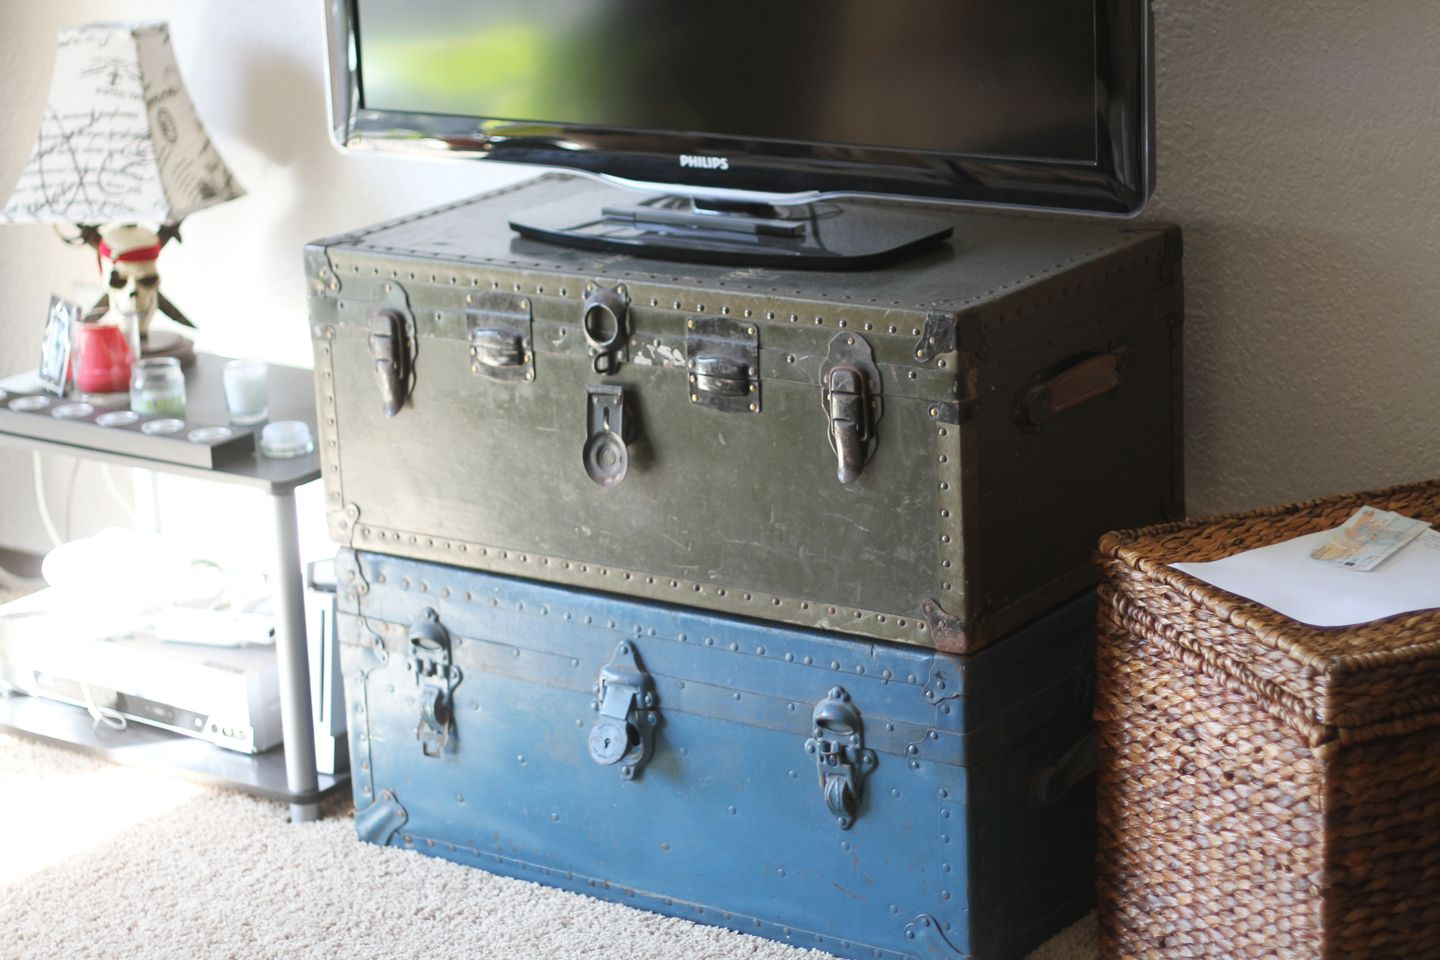 Use Old Trunks As A Tv Stand I Got These Vintage Trunks From My Elderly Neighbor Diy Tv Stand Vintage Trunks Old Trunks